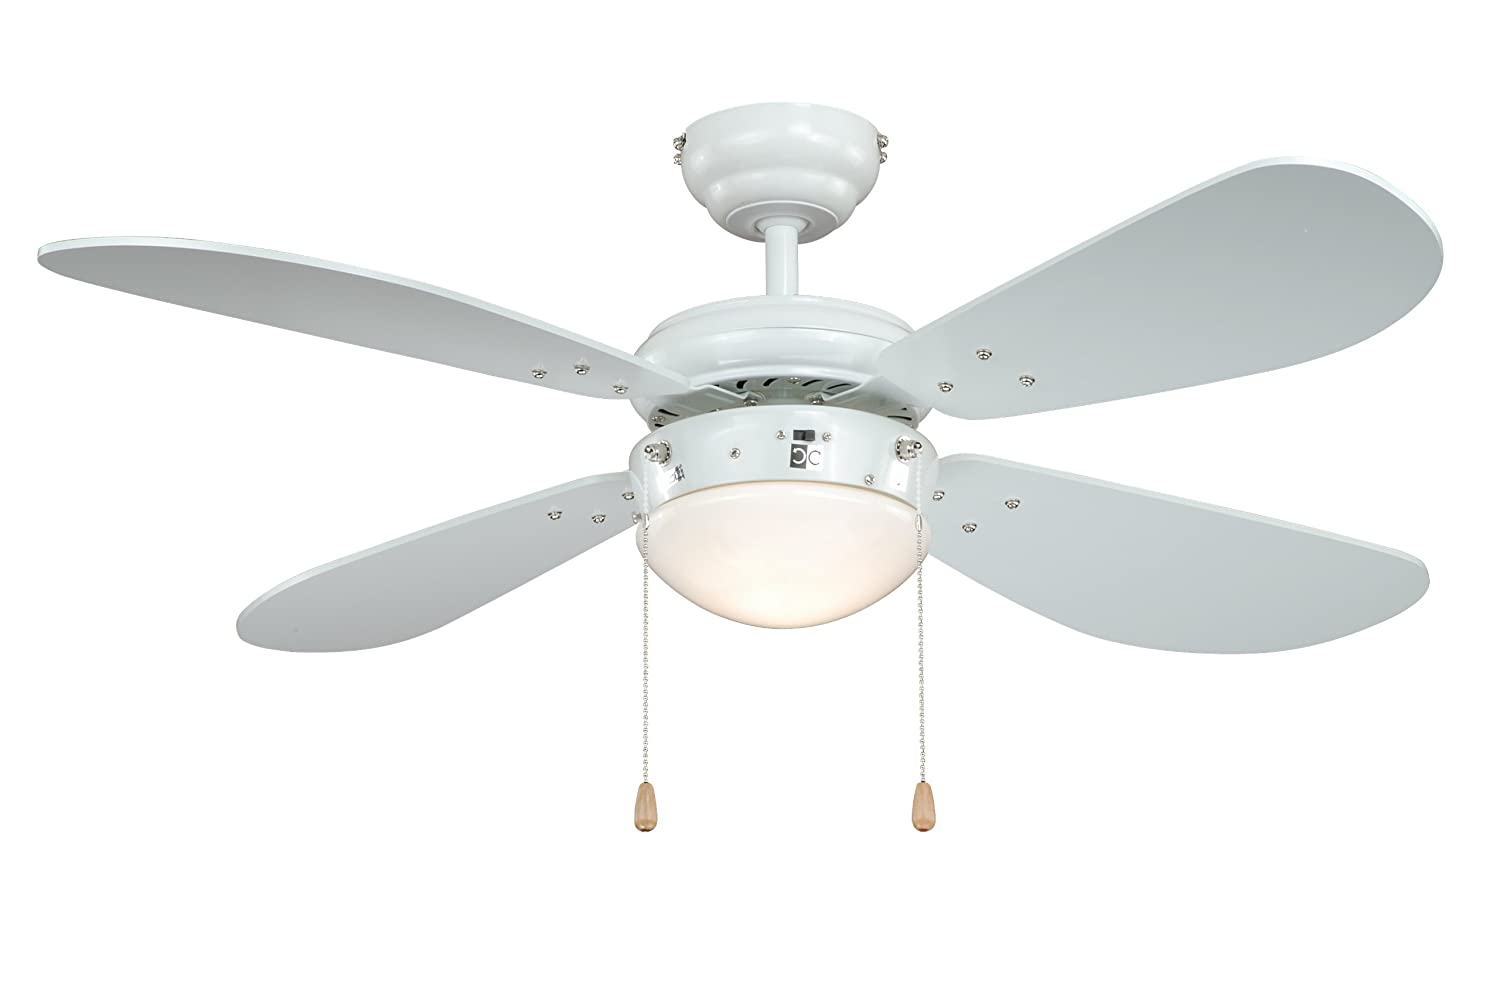 "AireRyder Ceiling Fan Classic White with Light Fitting 42"" 105cm with Pull Cords FN43311"